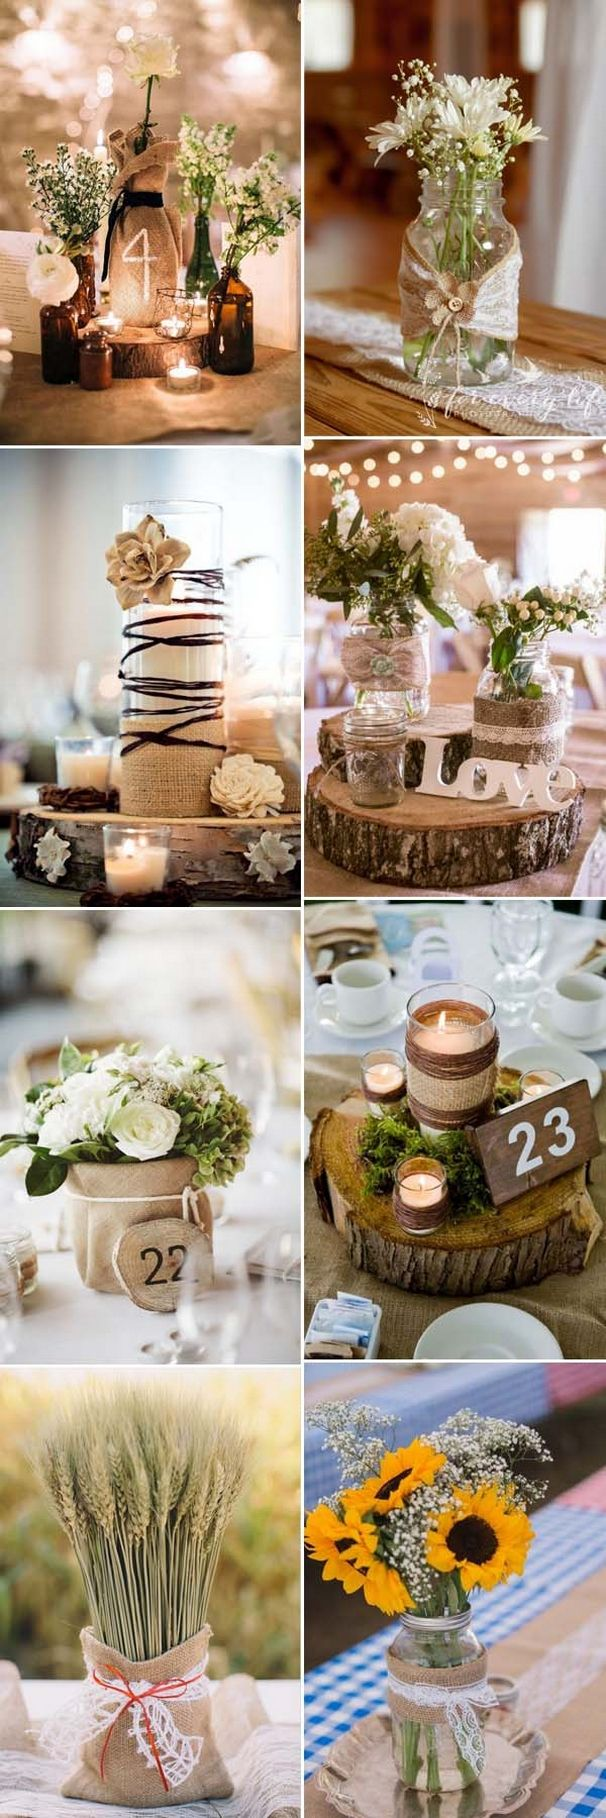 100 ideas for amazing wedding centerpieces rustic casamento 100 ideas for amazing wedding centerpieces rustic casamento decorao de e decorao casamento junglespirit Gallery